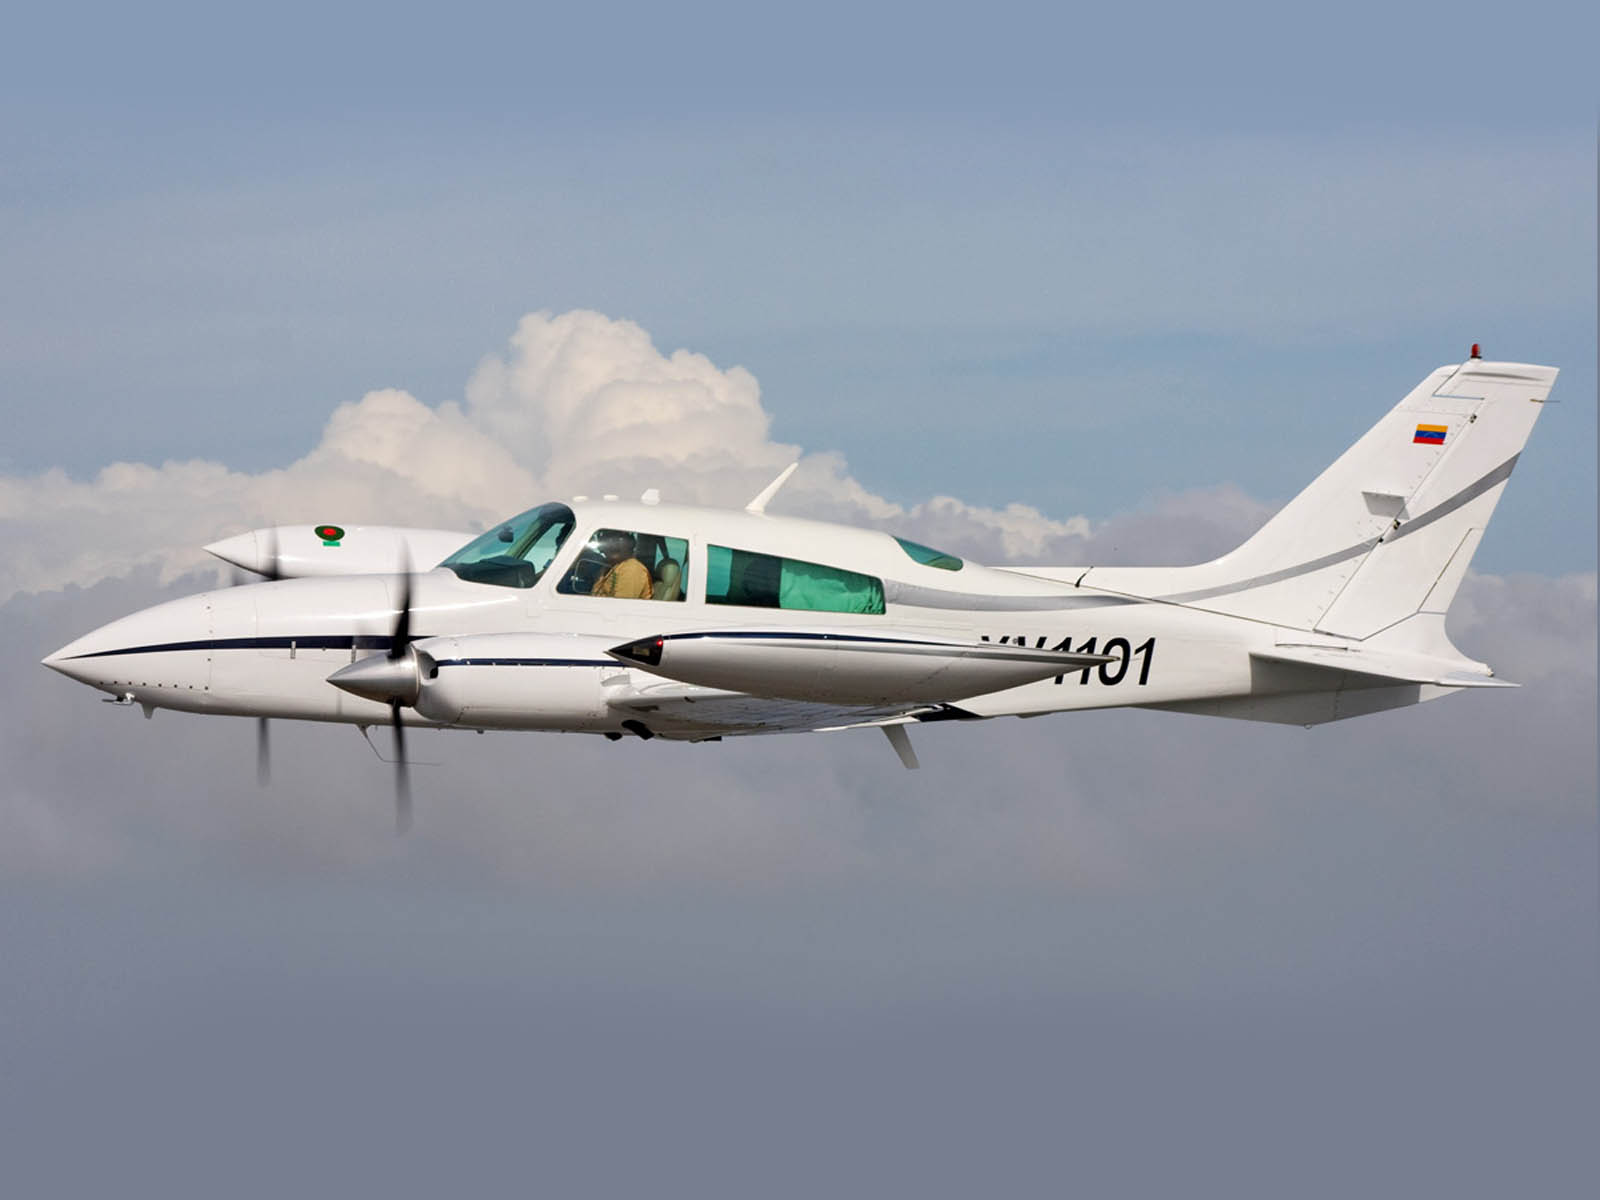 Tag: Cessna 310 Aircraft Wallpapers, Images, Paos and Pictures for ...